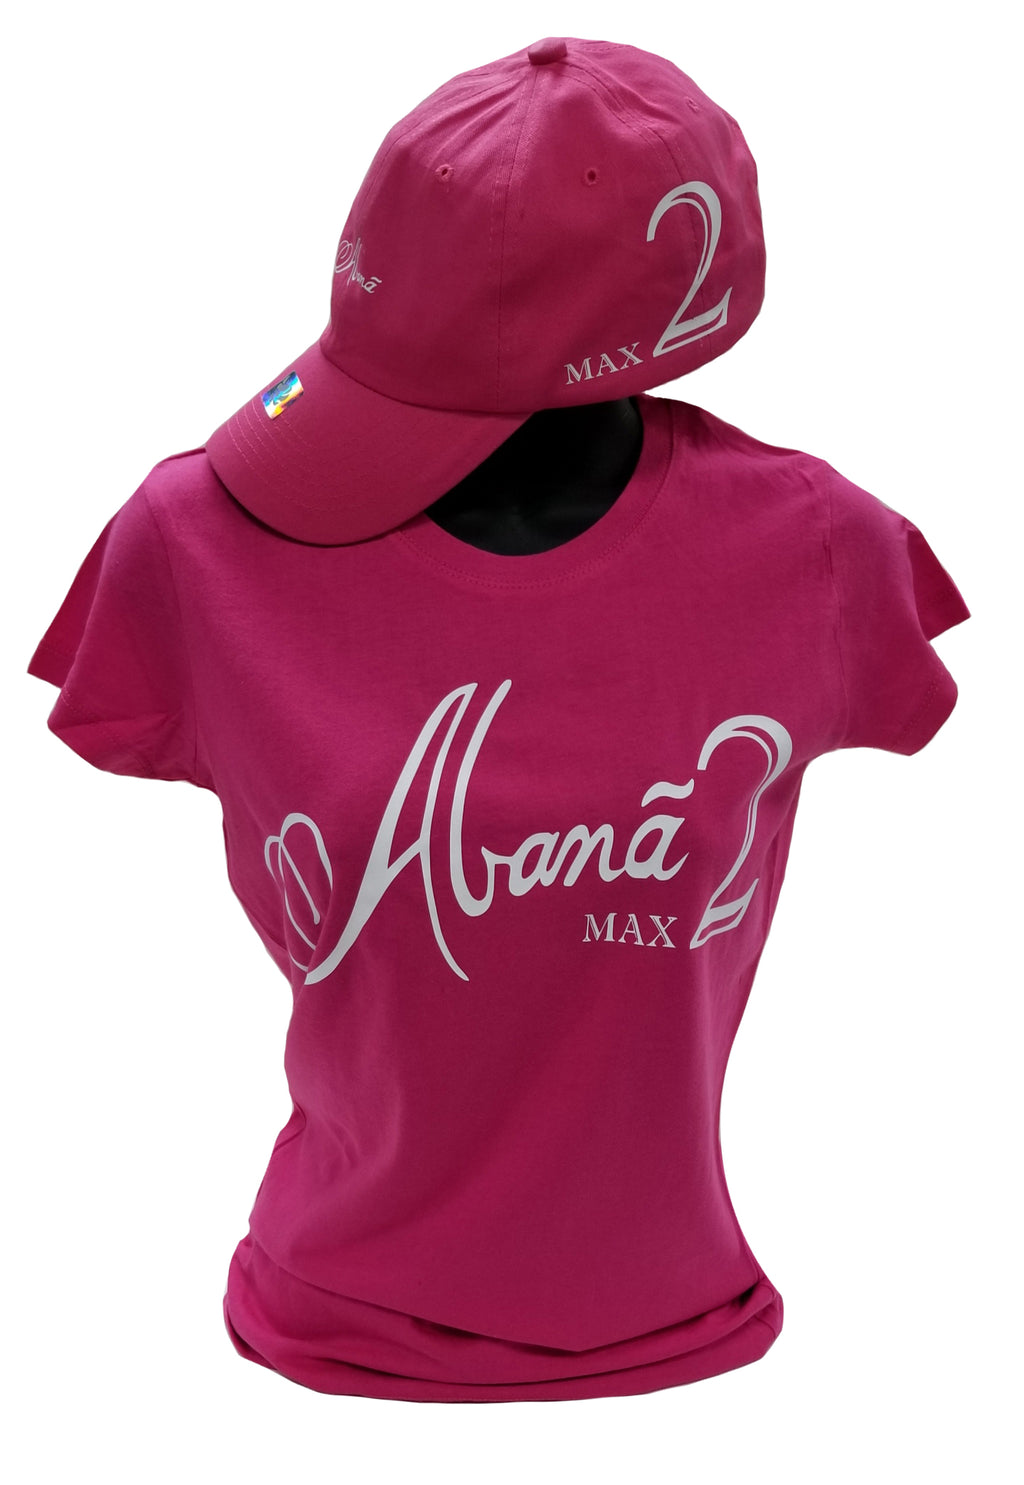 Women Max II Regular T-Shirt Combo Sets (CLICK TO VIEW OTHER COLORS)